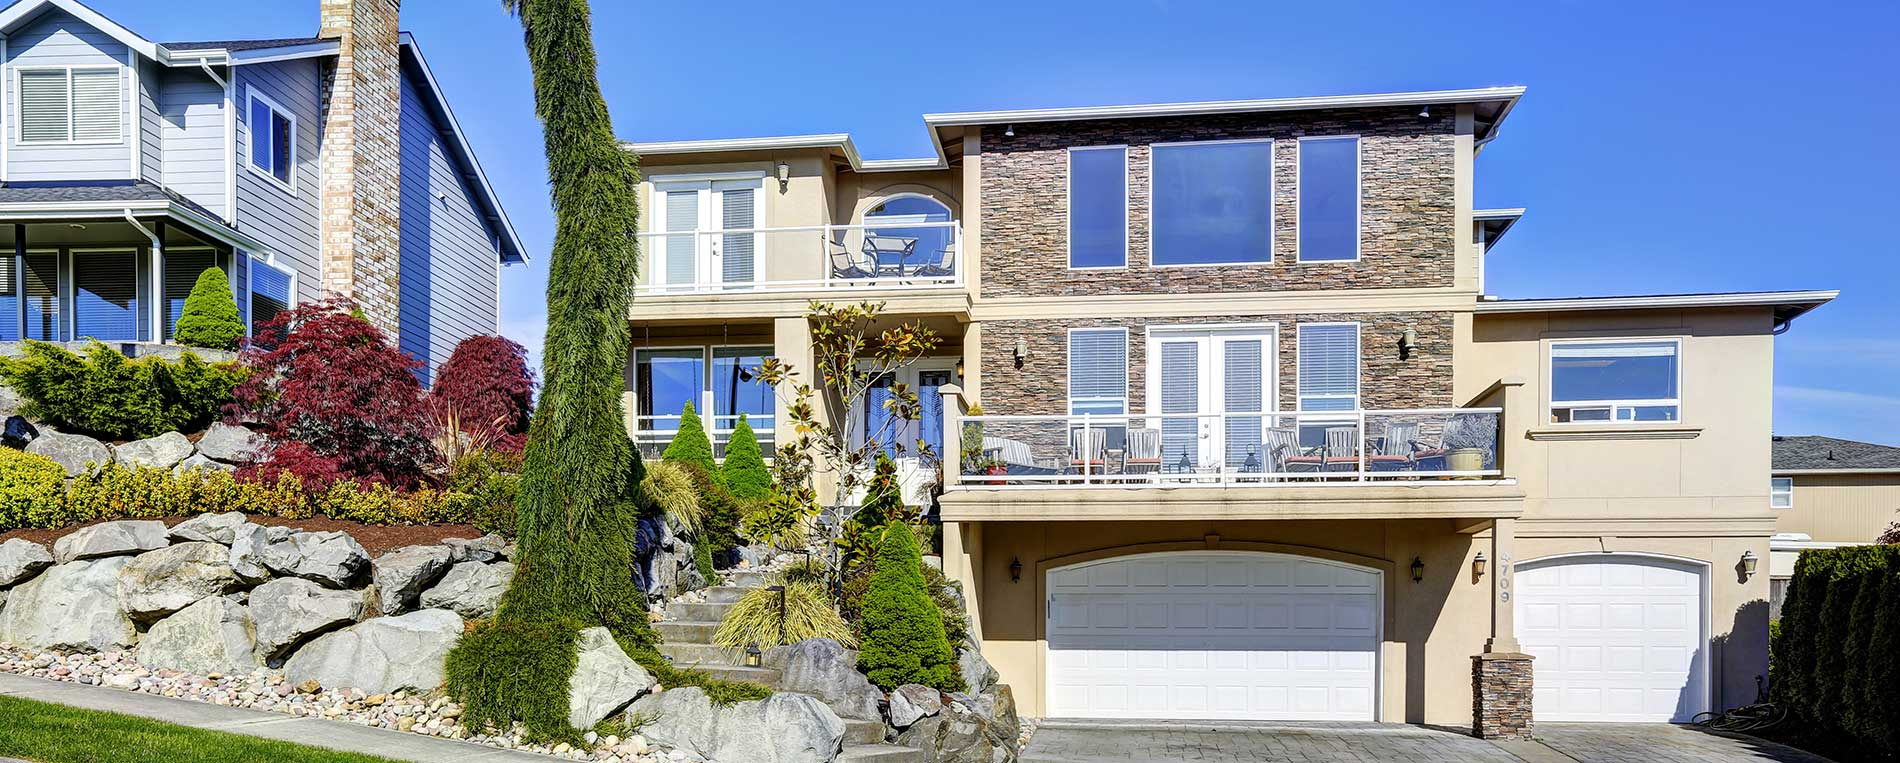 Track Replacement For Garage Door In Robbinsdale